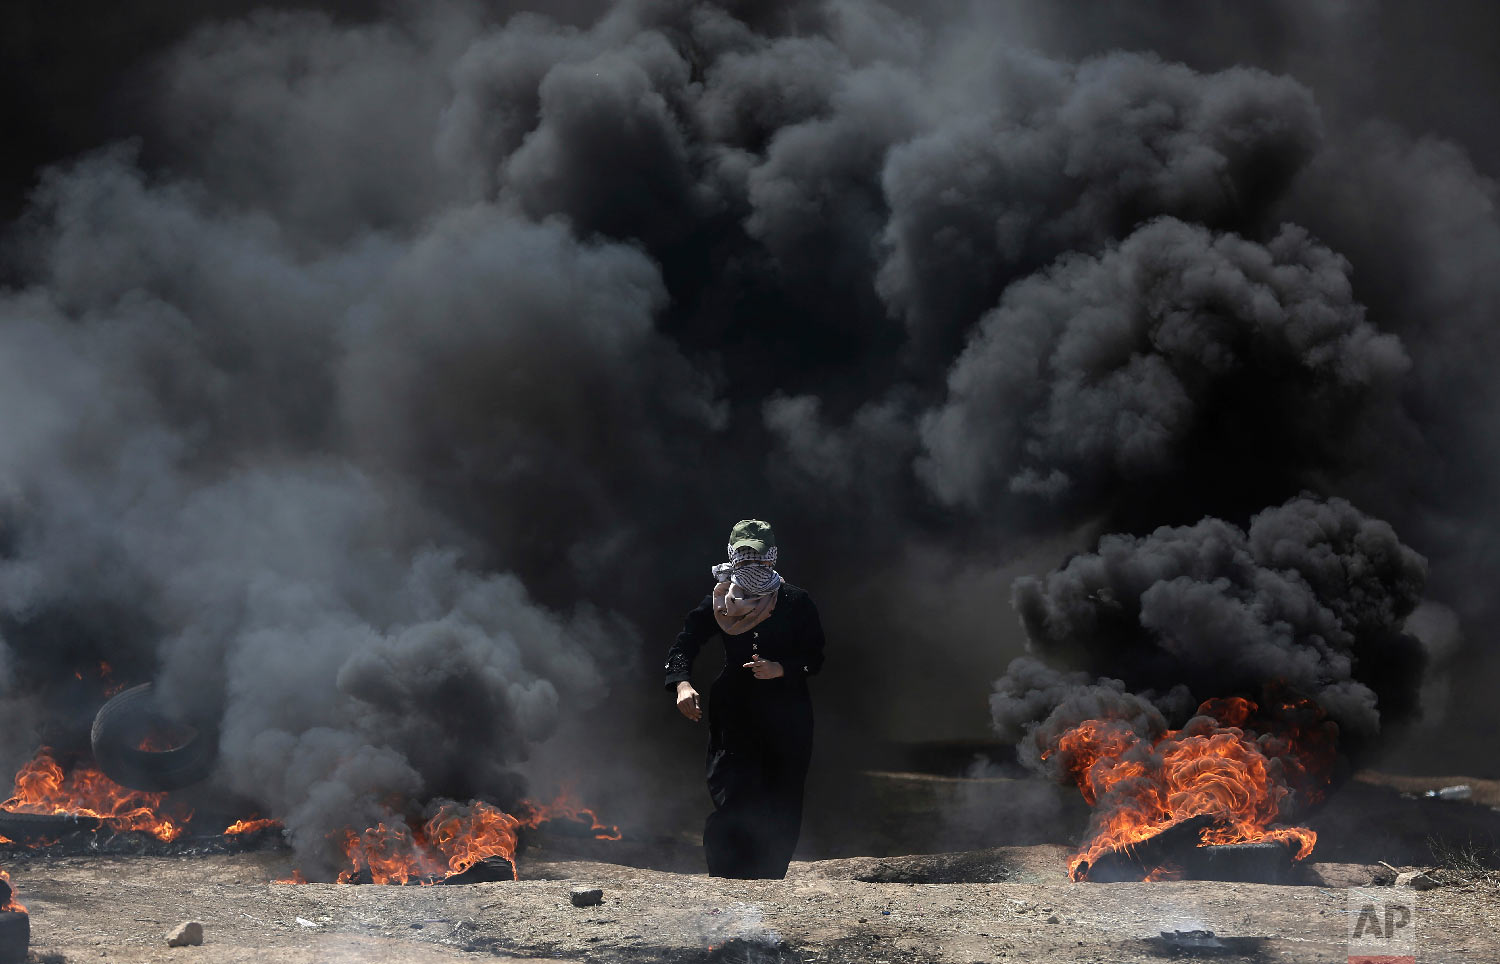 A Palestinian woman walks through black smoke from burning tires during a protest on the Gaza Strip's border with Israel, Monday, May 14, 2018. (AP Photo/Khalil Hamra)